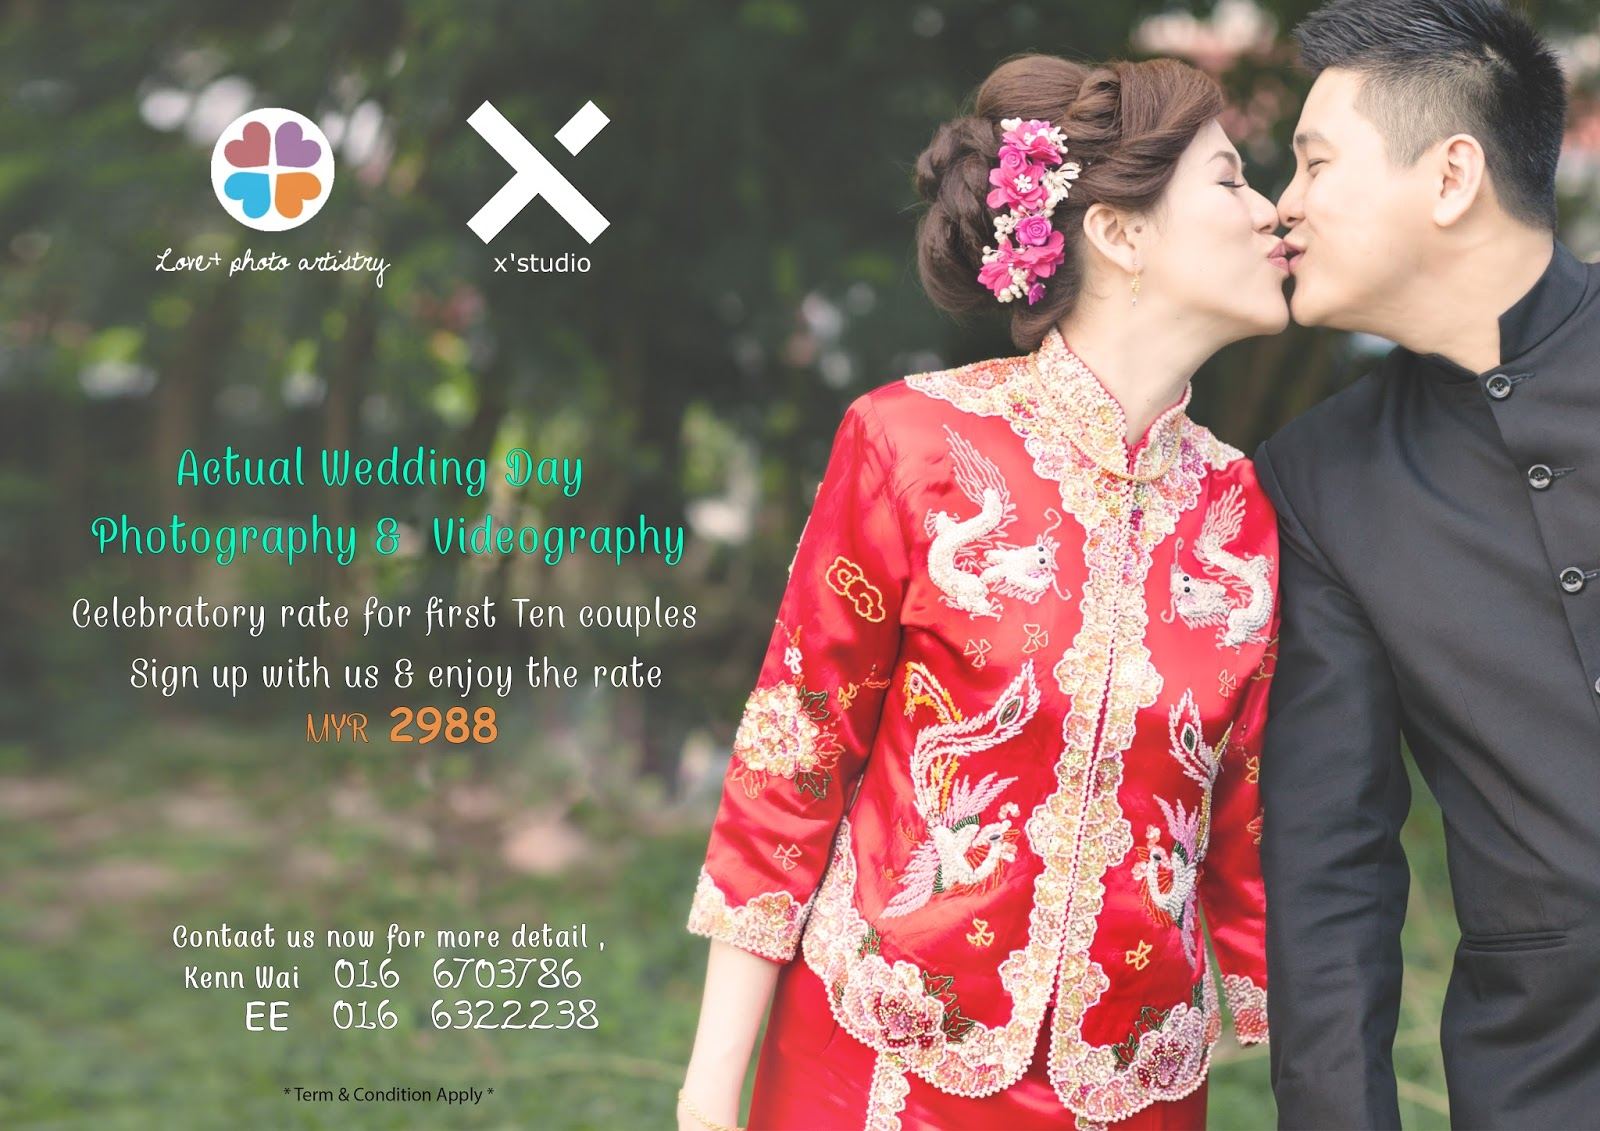 Wedding photography promotion in malaysia — 2